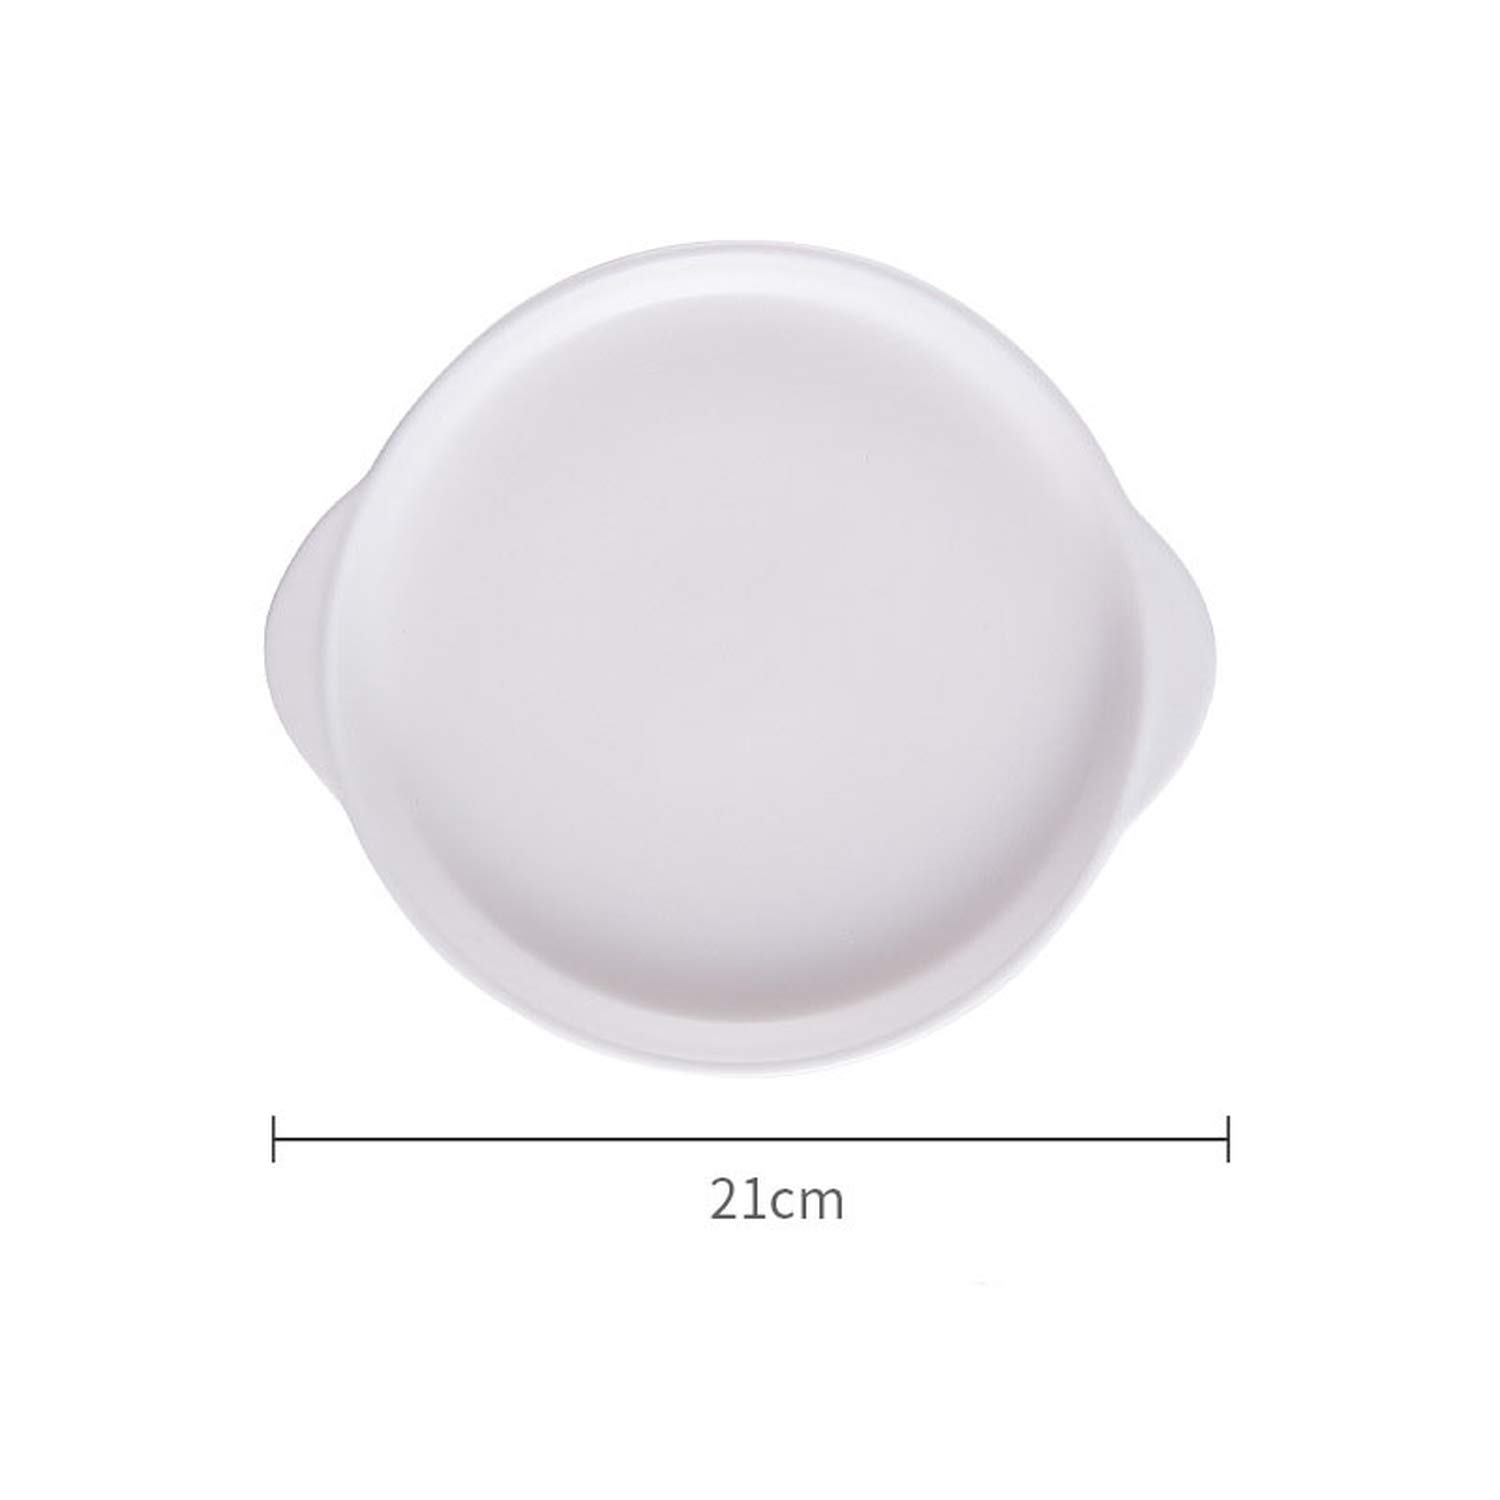 Nordic 8 inch Round Plate with Handle Baking Dish Matte Glazed Ceramic Plate Ins Popular Salad Plate,White